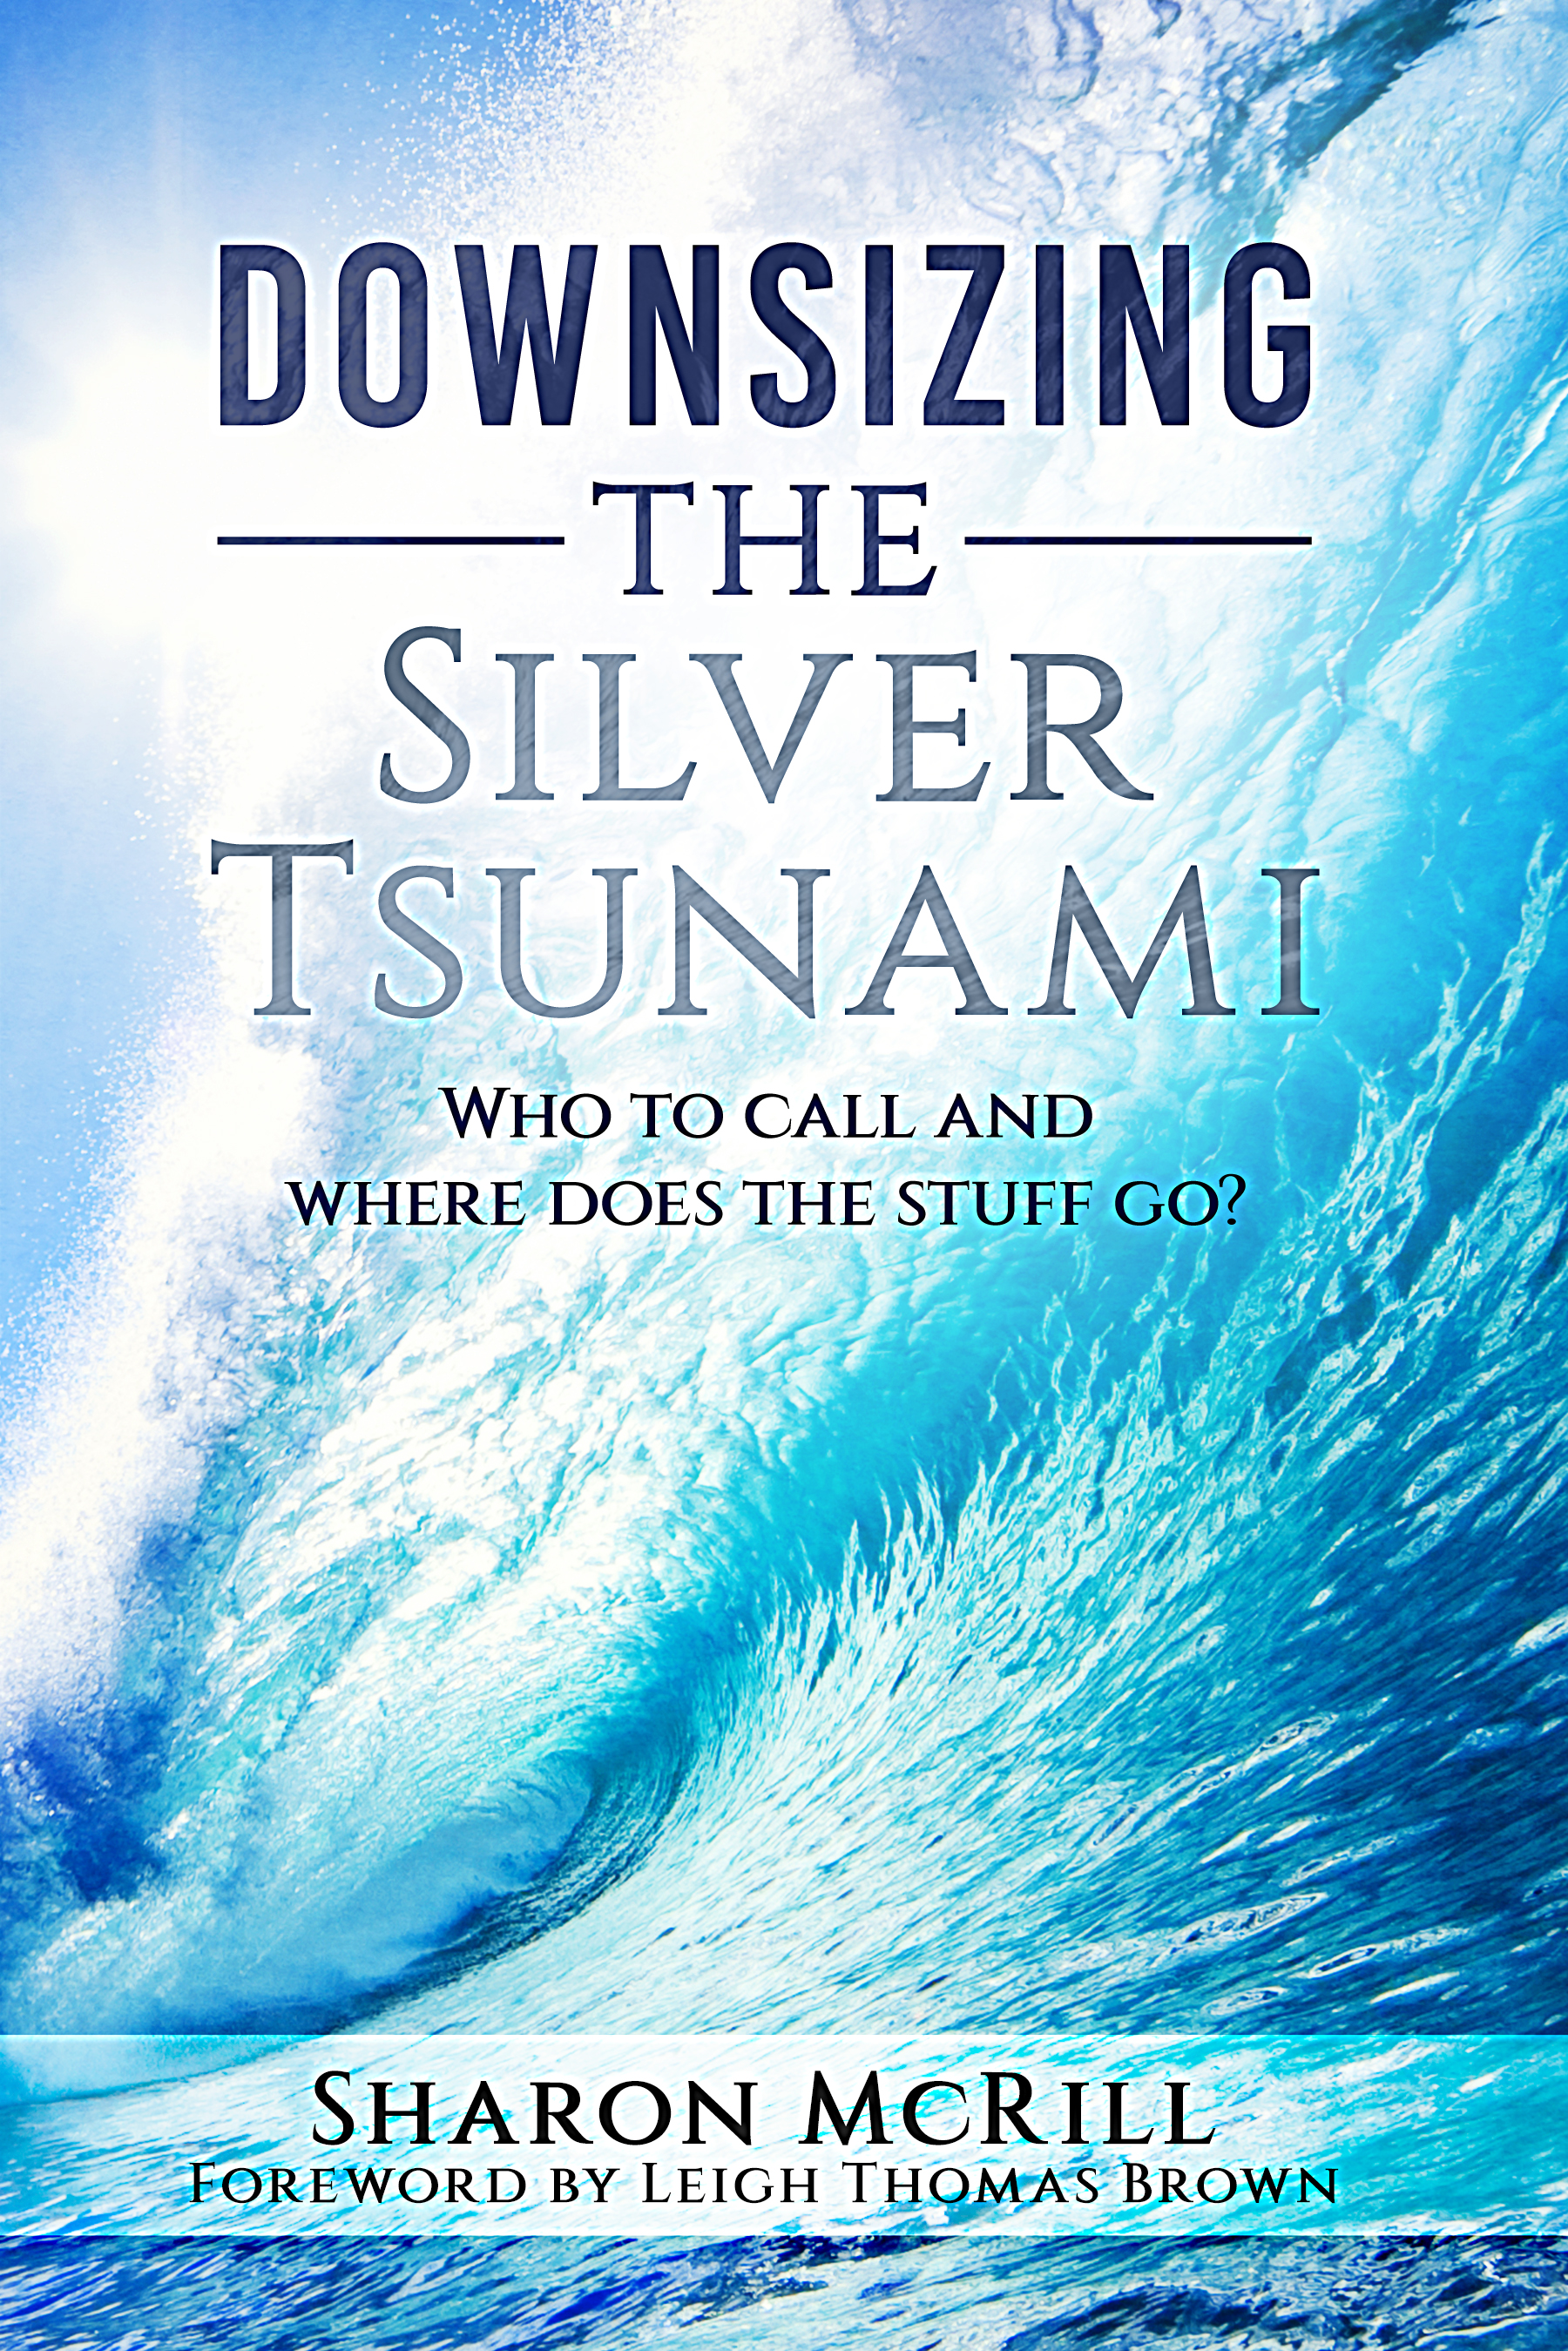 Downsizing the Silver Tsunami